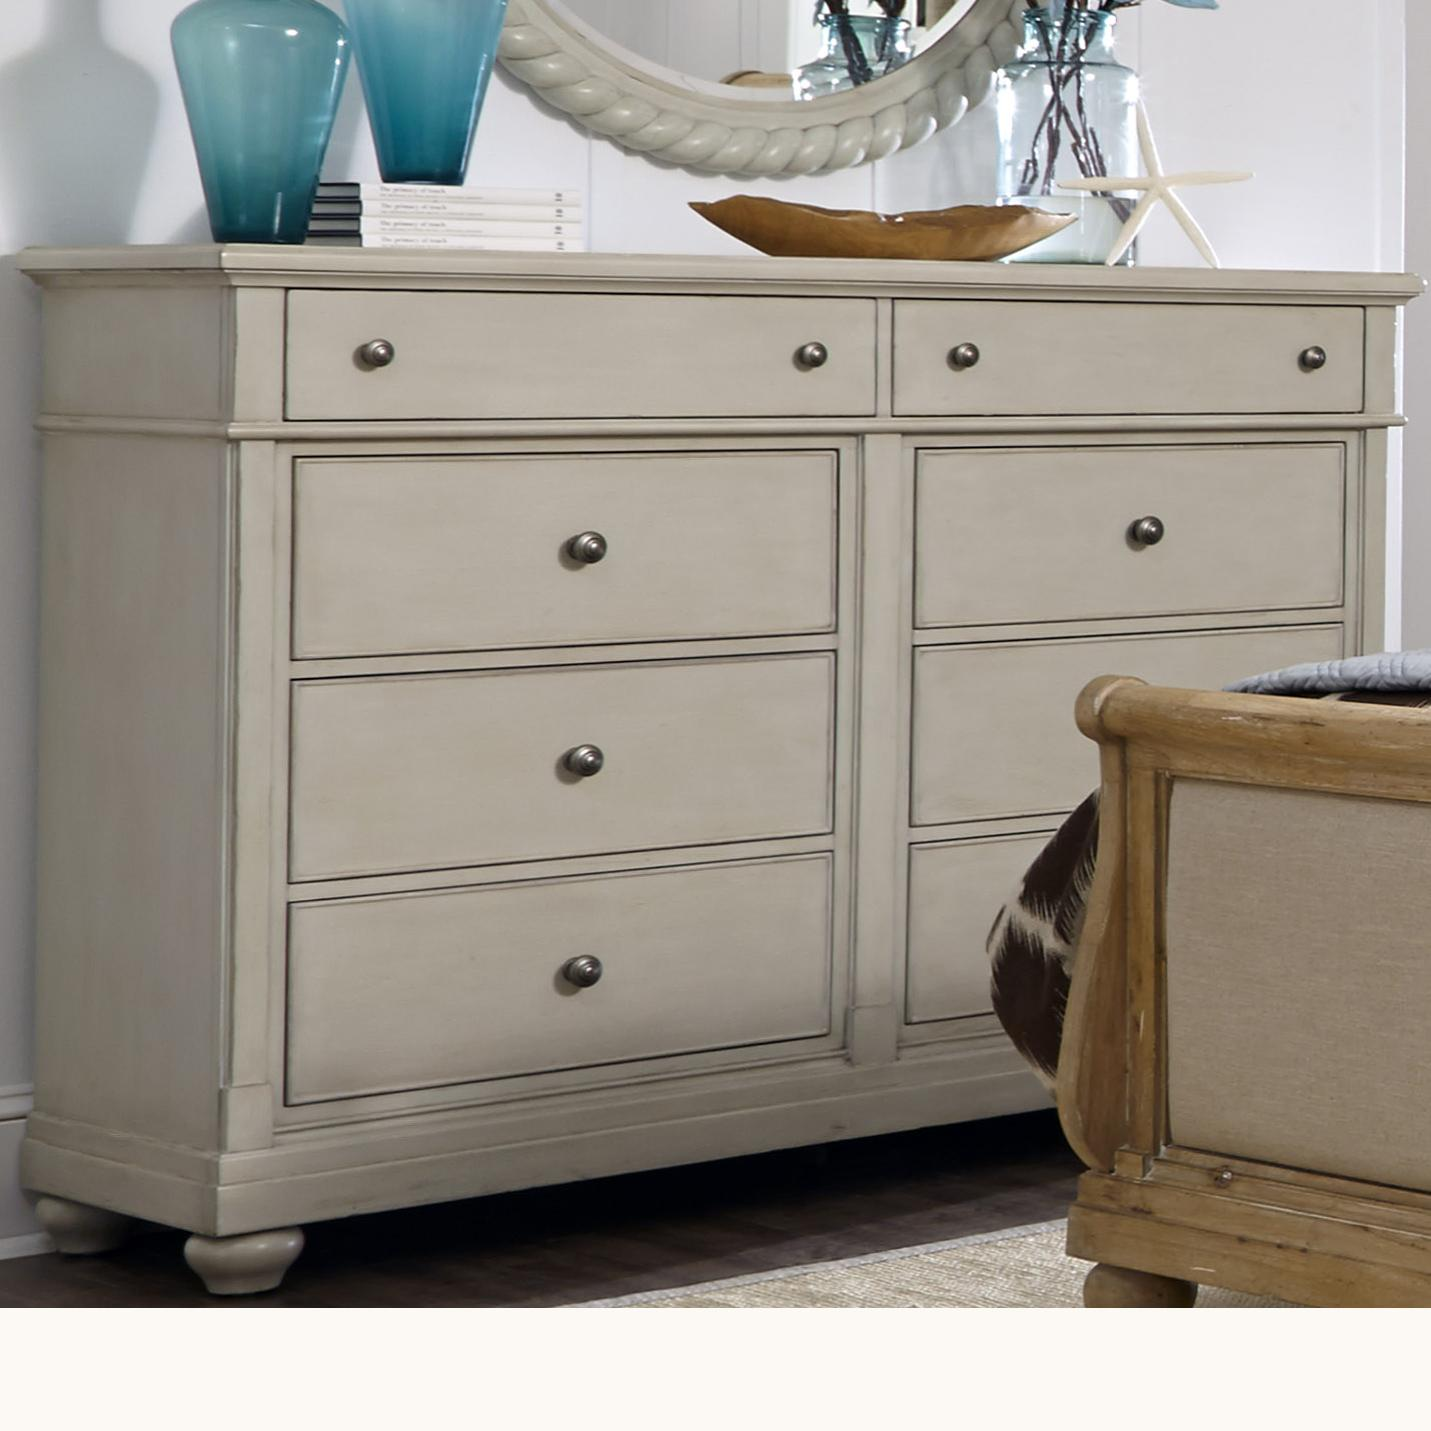 Liberty Furniture Harbor View Dresser with 8 Drawers - Item Number: 731-BR32